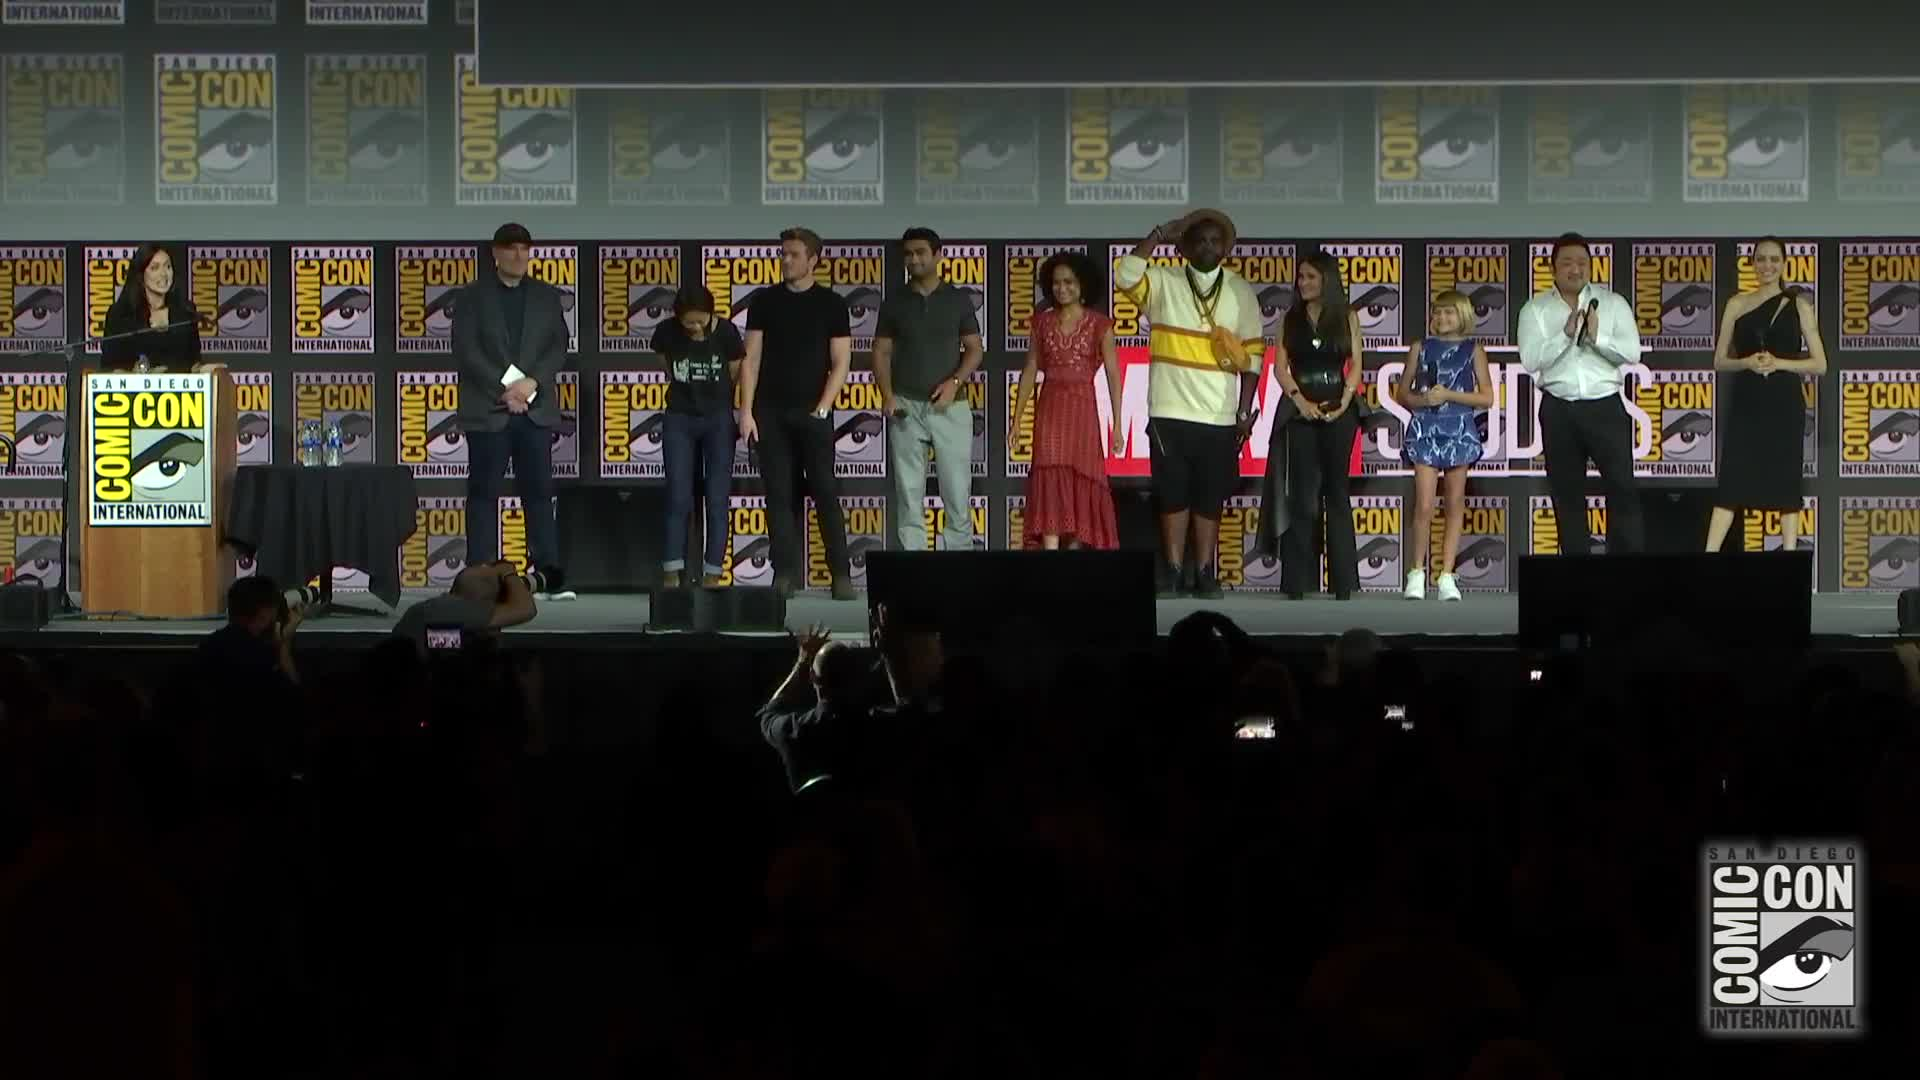 Marvel Studios - Hall H Panel B-Roll - SDCC 2019 [HD] screen capture